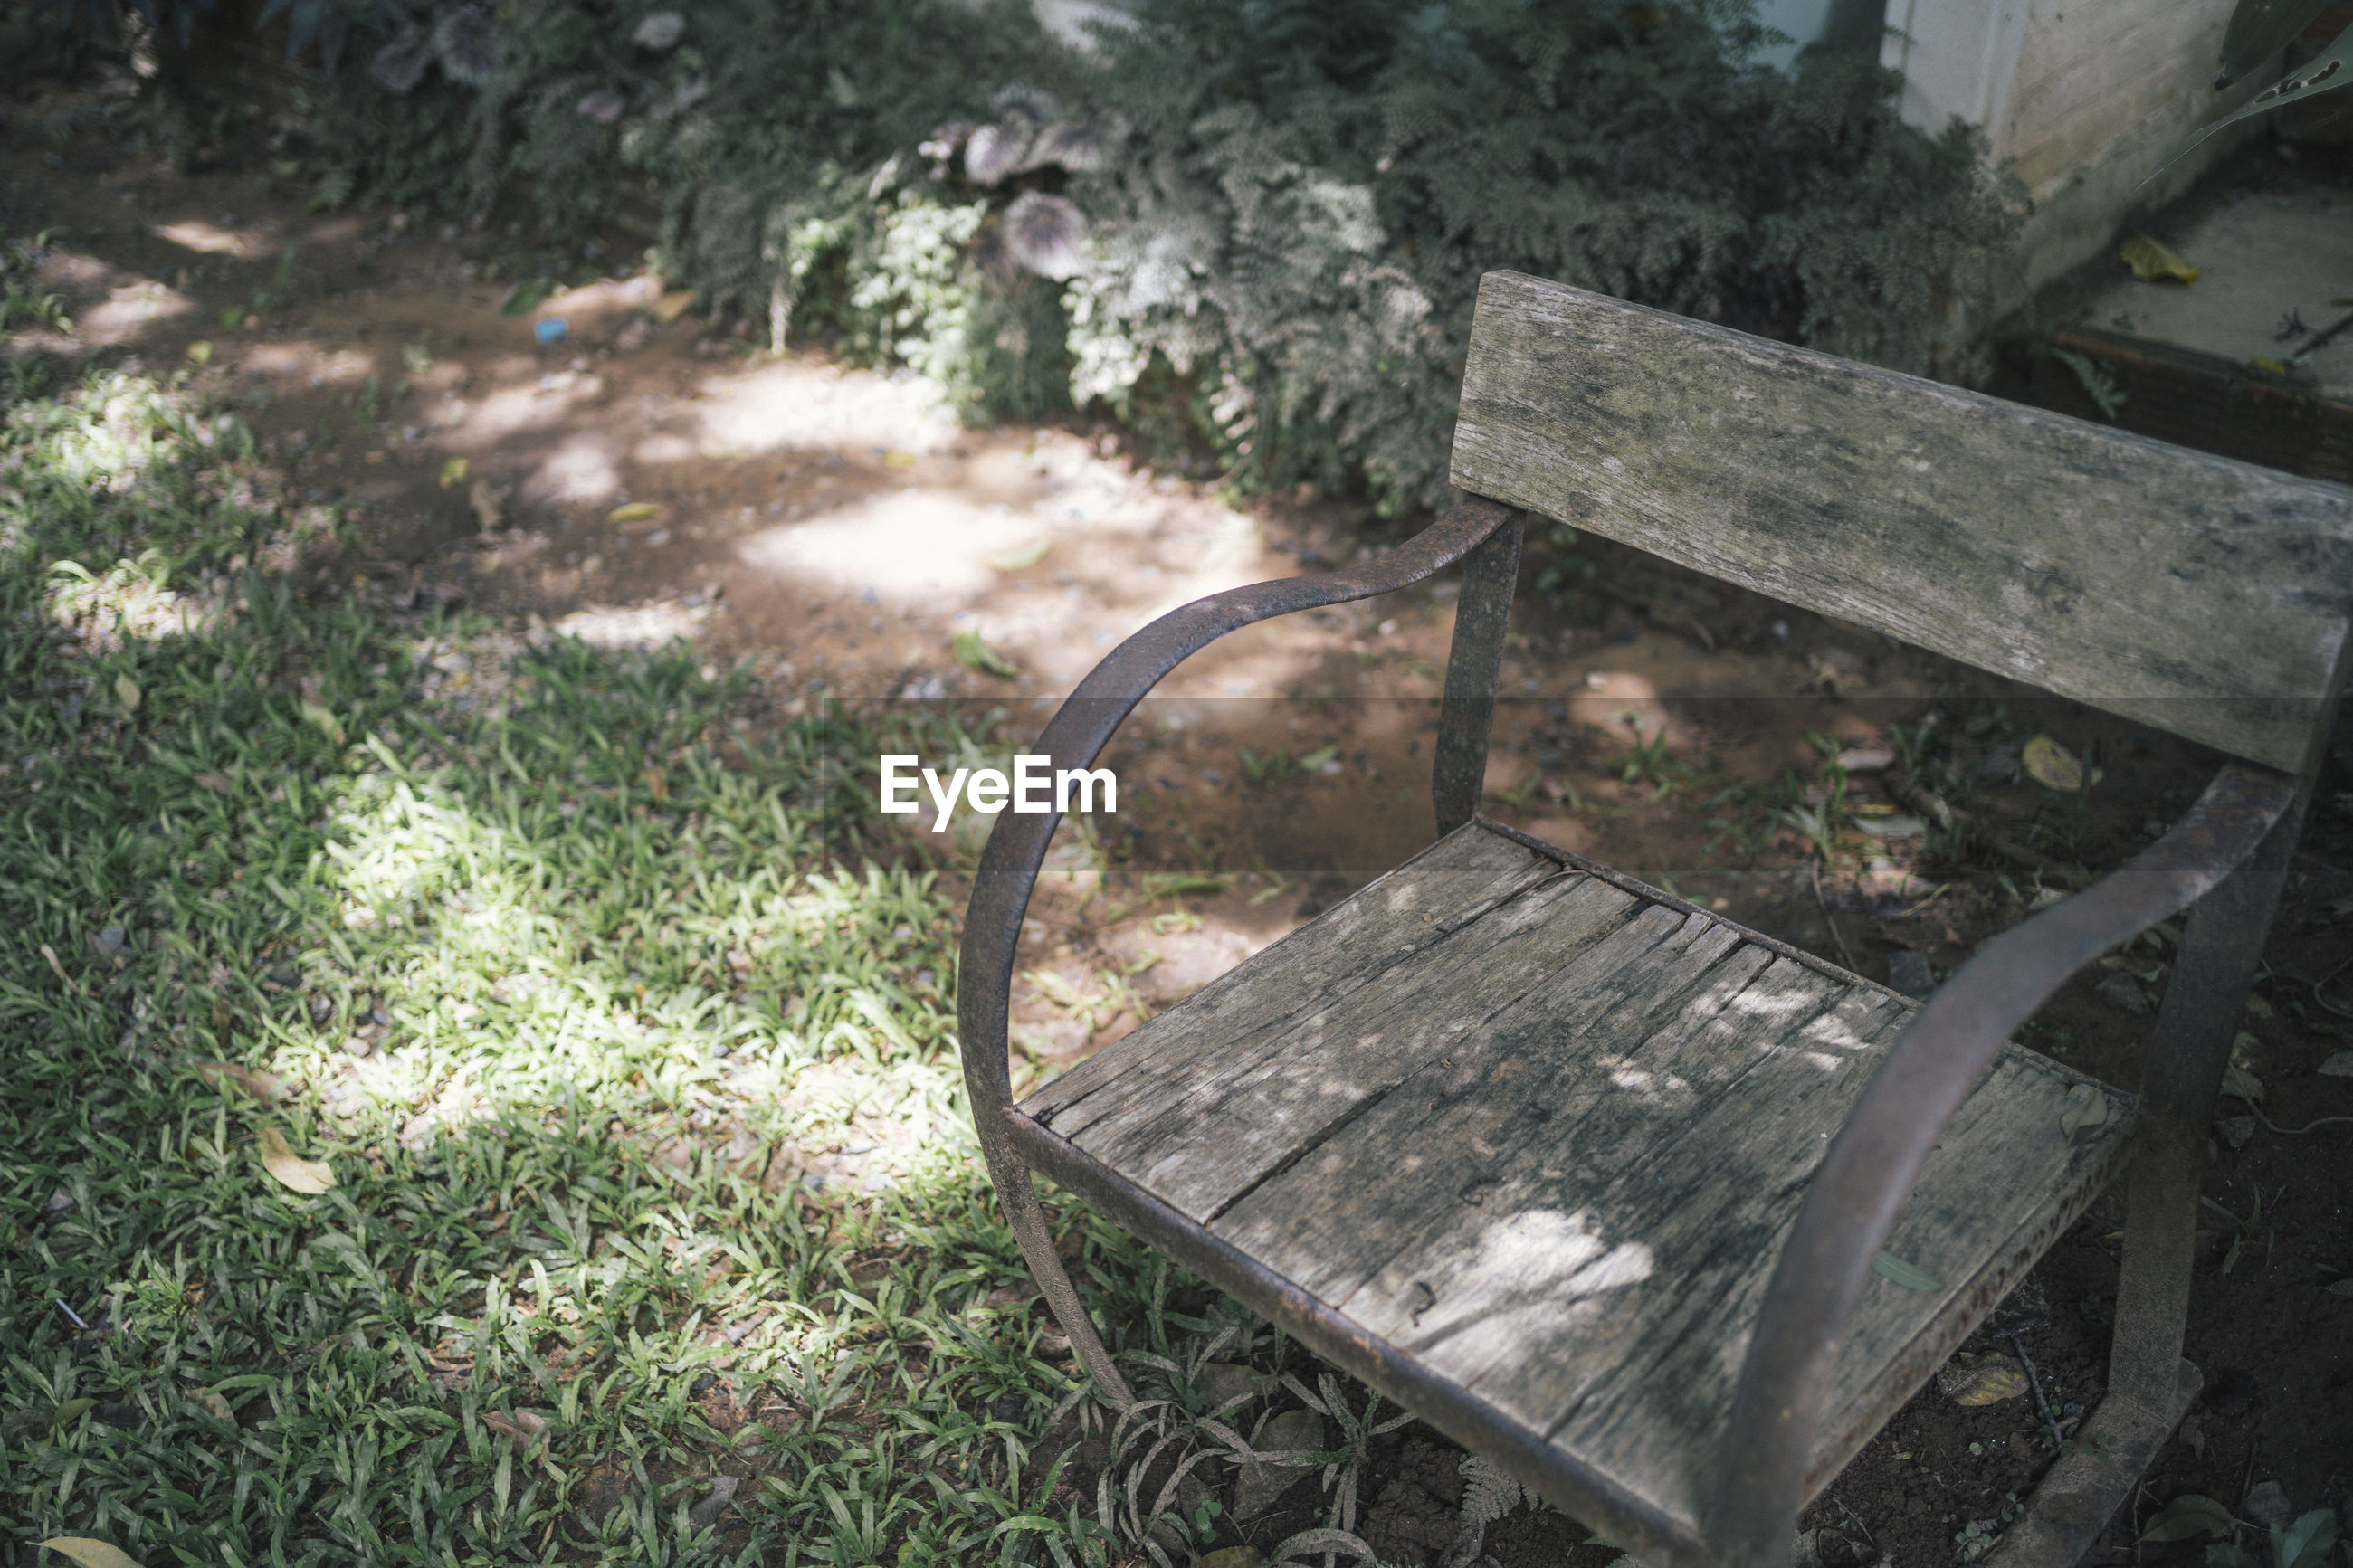 HIGH ANGLE VIEW OF PARK BENCH IN GARDEN